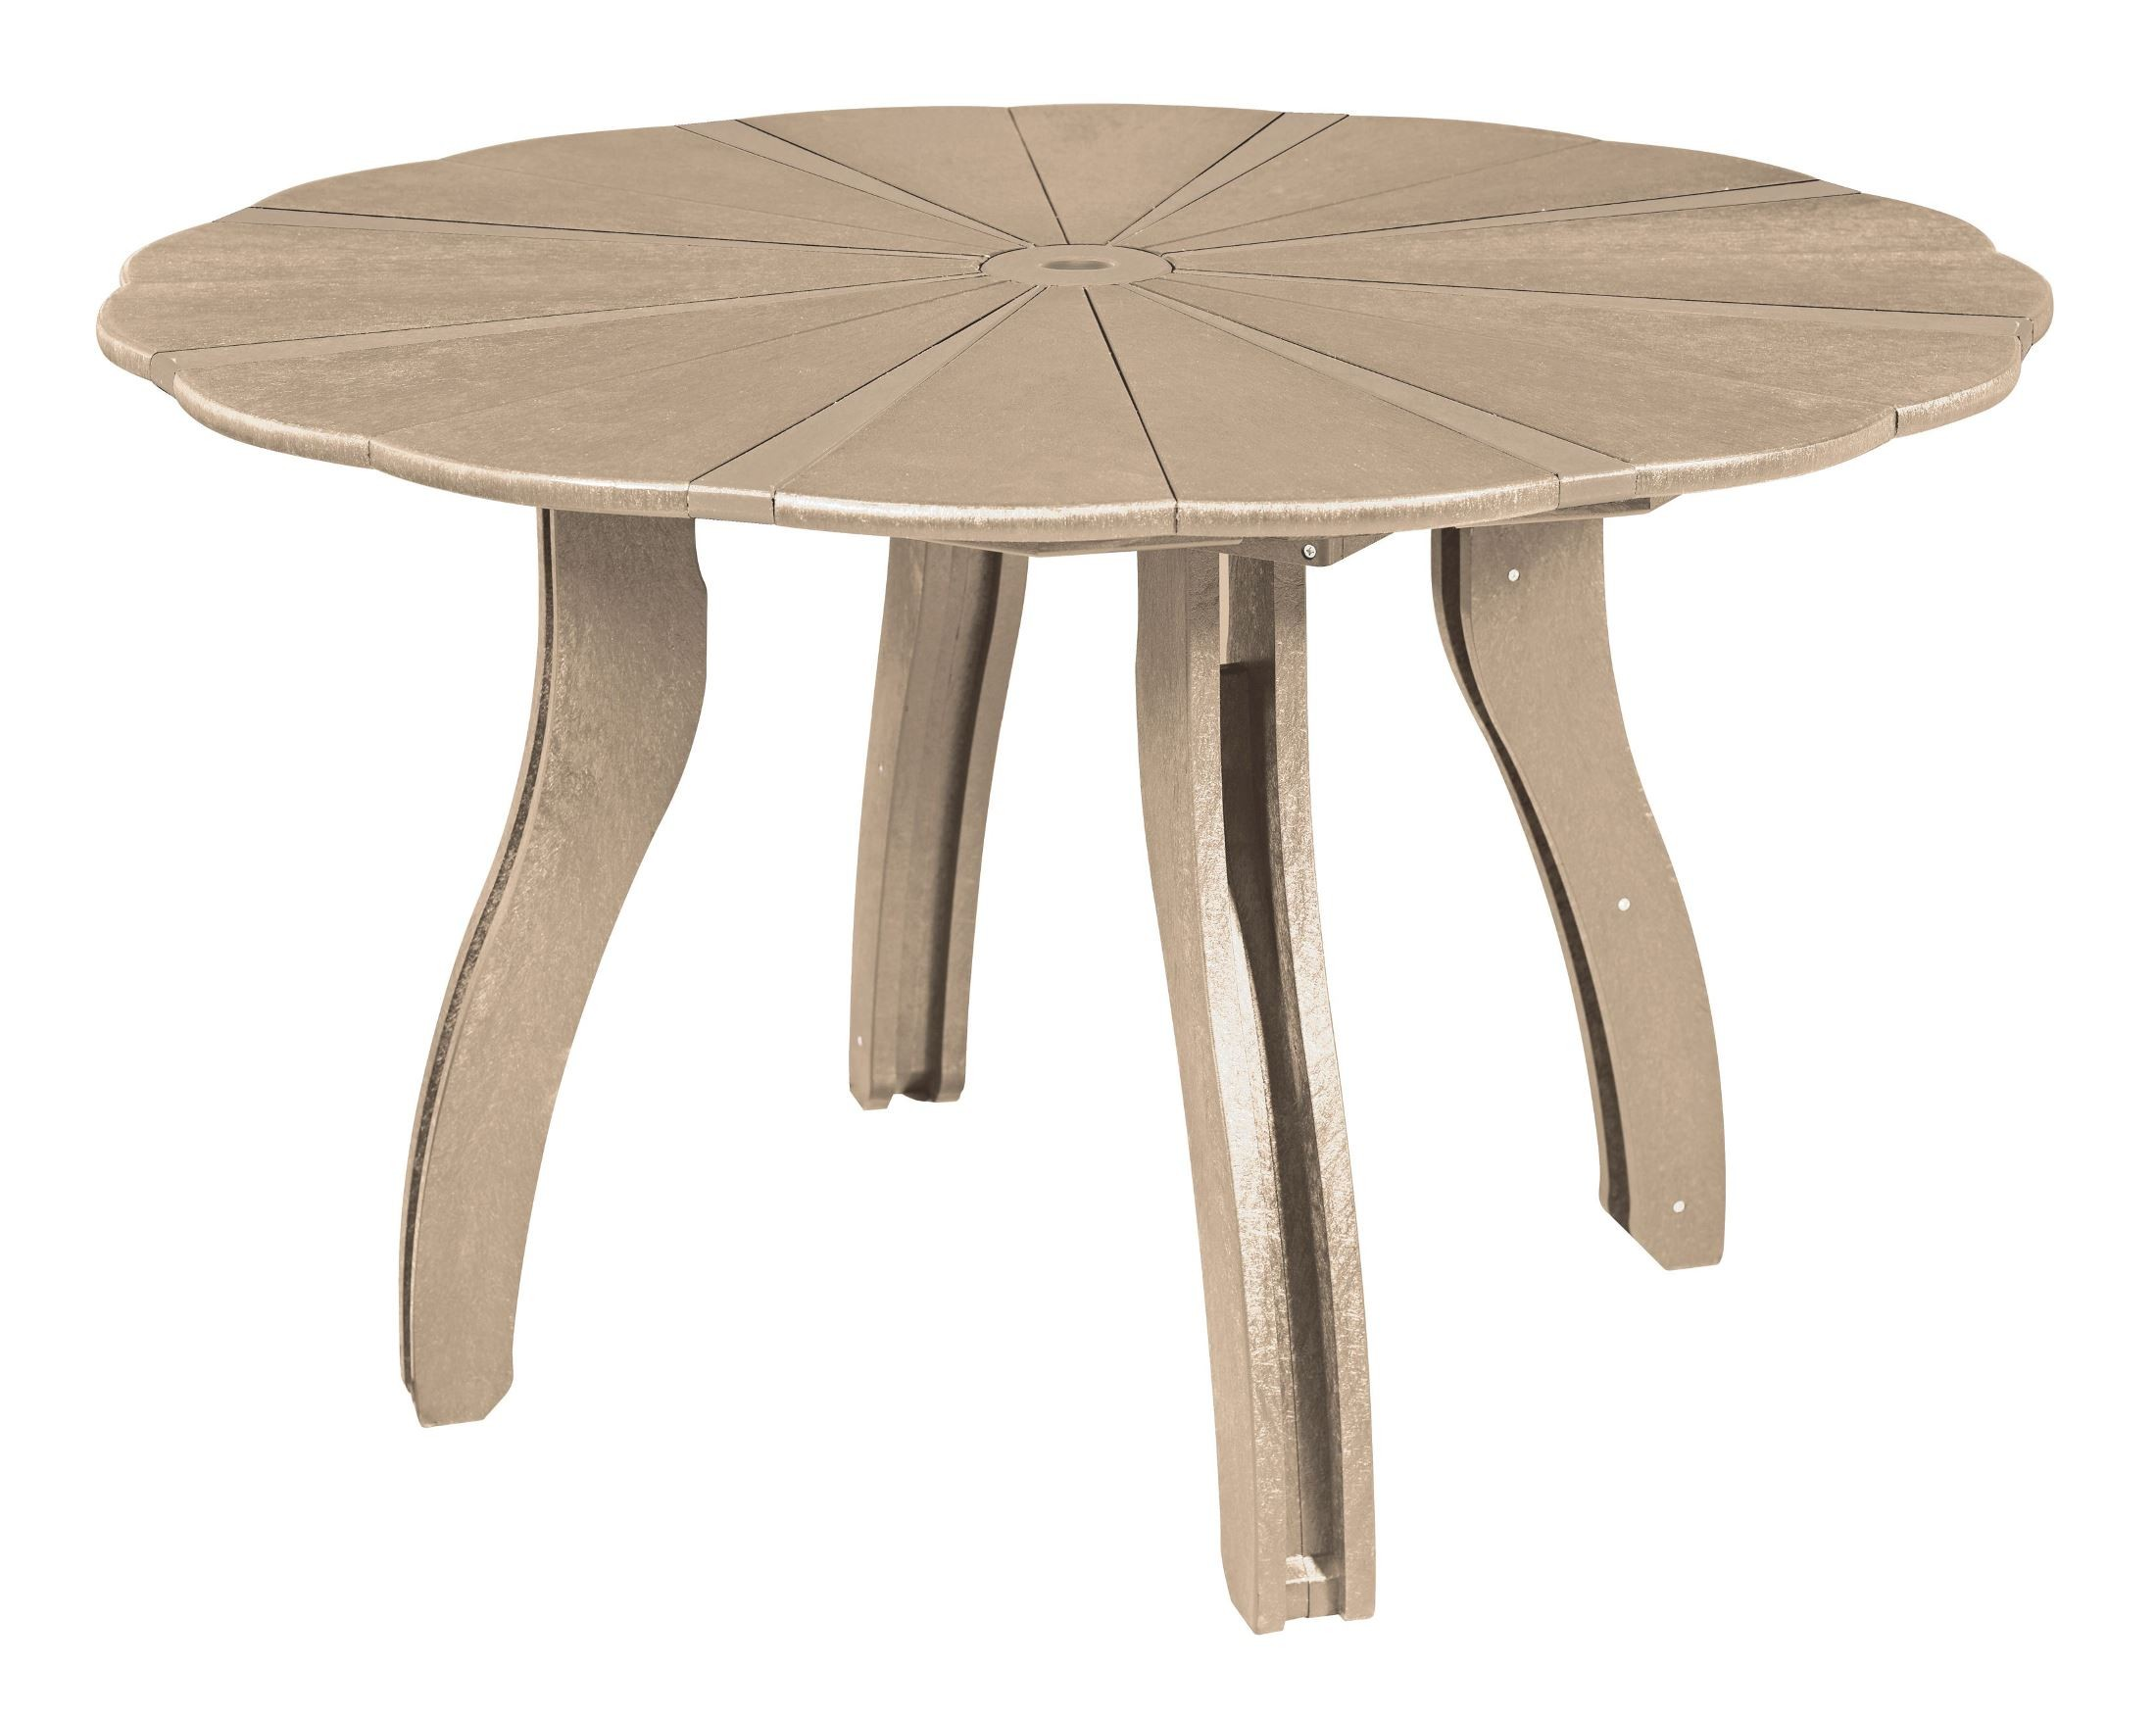 "Round Dining Table 52 Inch: Generations Beige 52"" Scalloped Round Dining Table From CR"